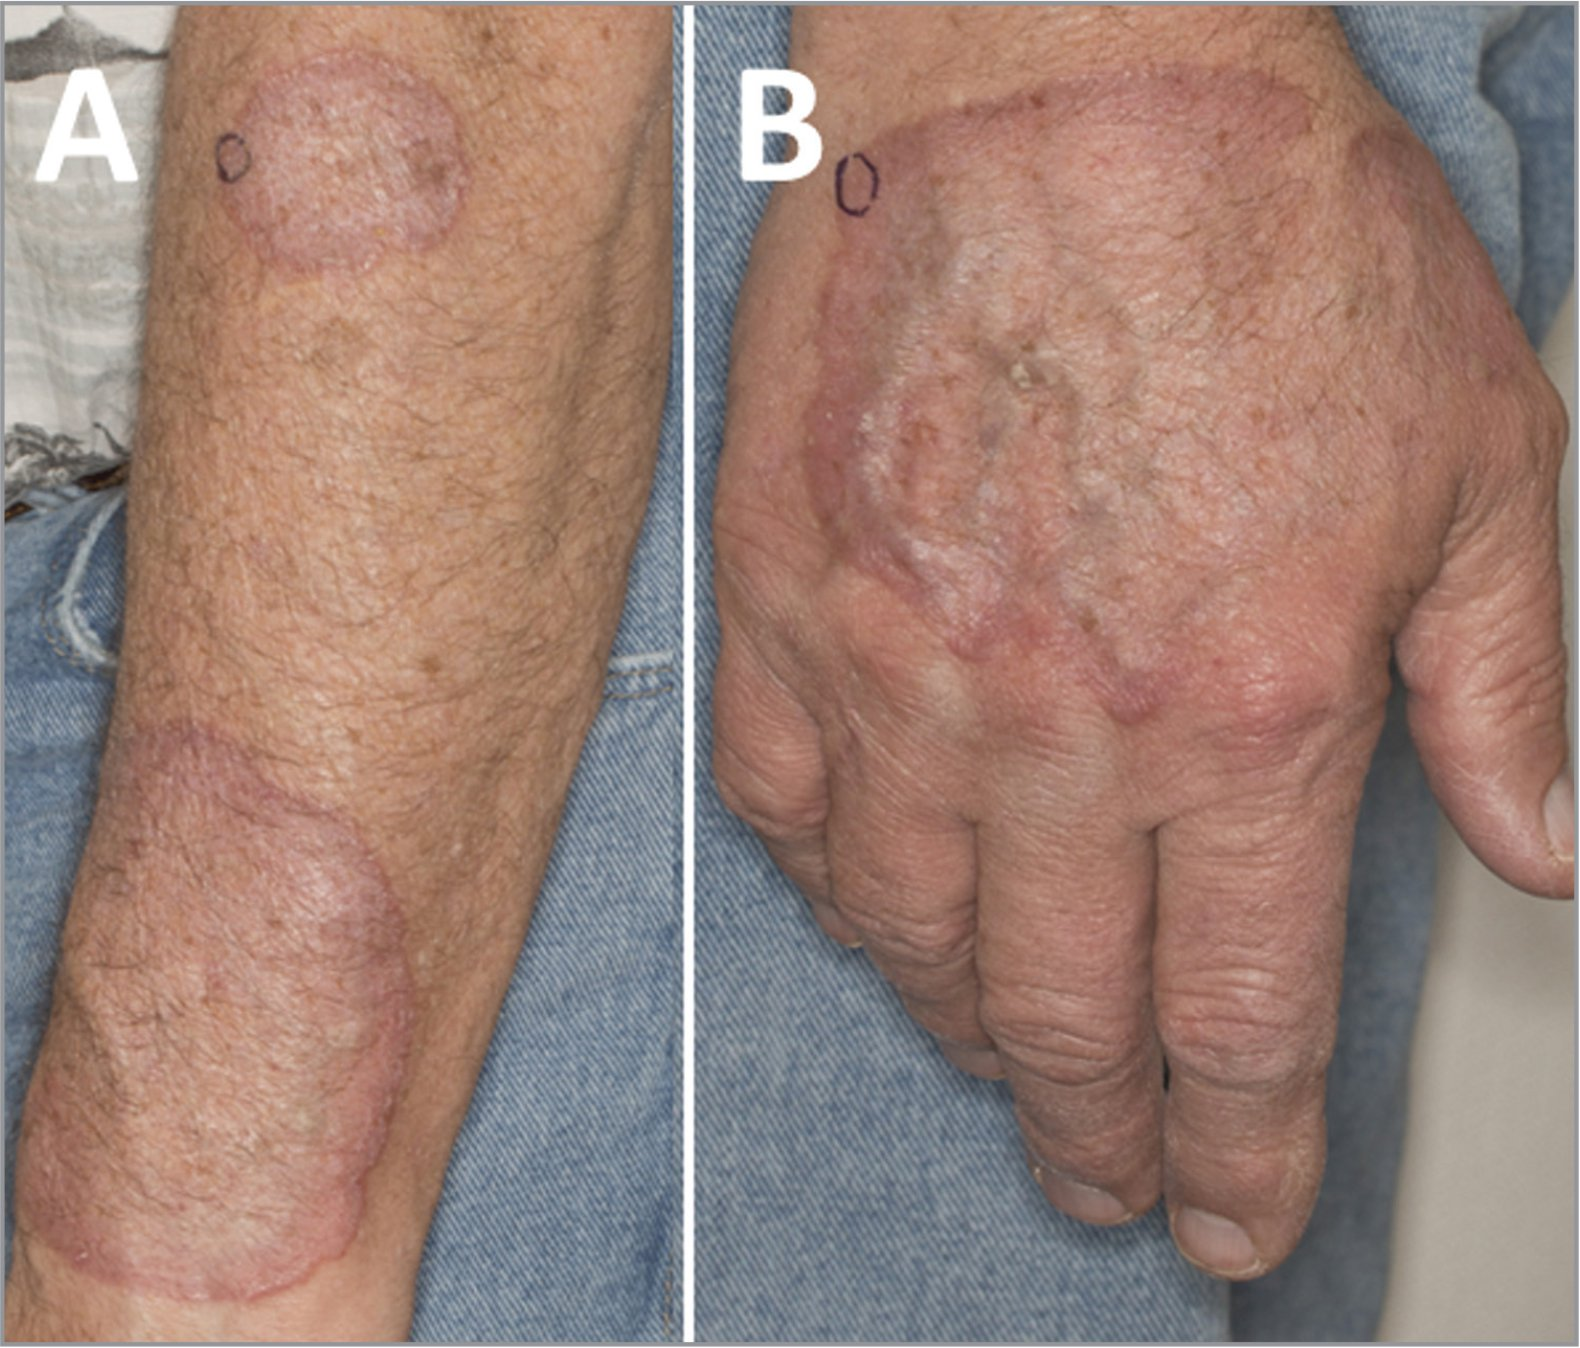 Color photos of the patient's left forearm (A) and right hand (B) show characteristic ring-shaped erythematous plaques, consistent with cutaneous granuloma annulare. The areas circled in black were biopsied.